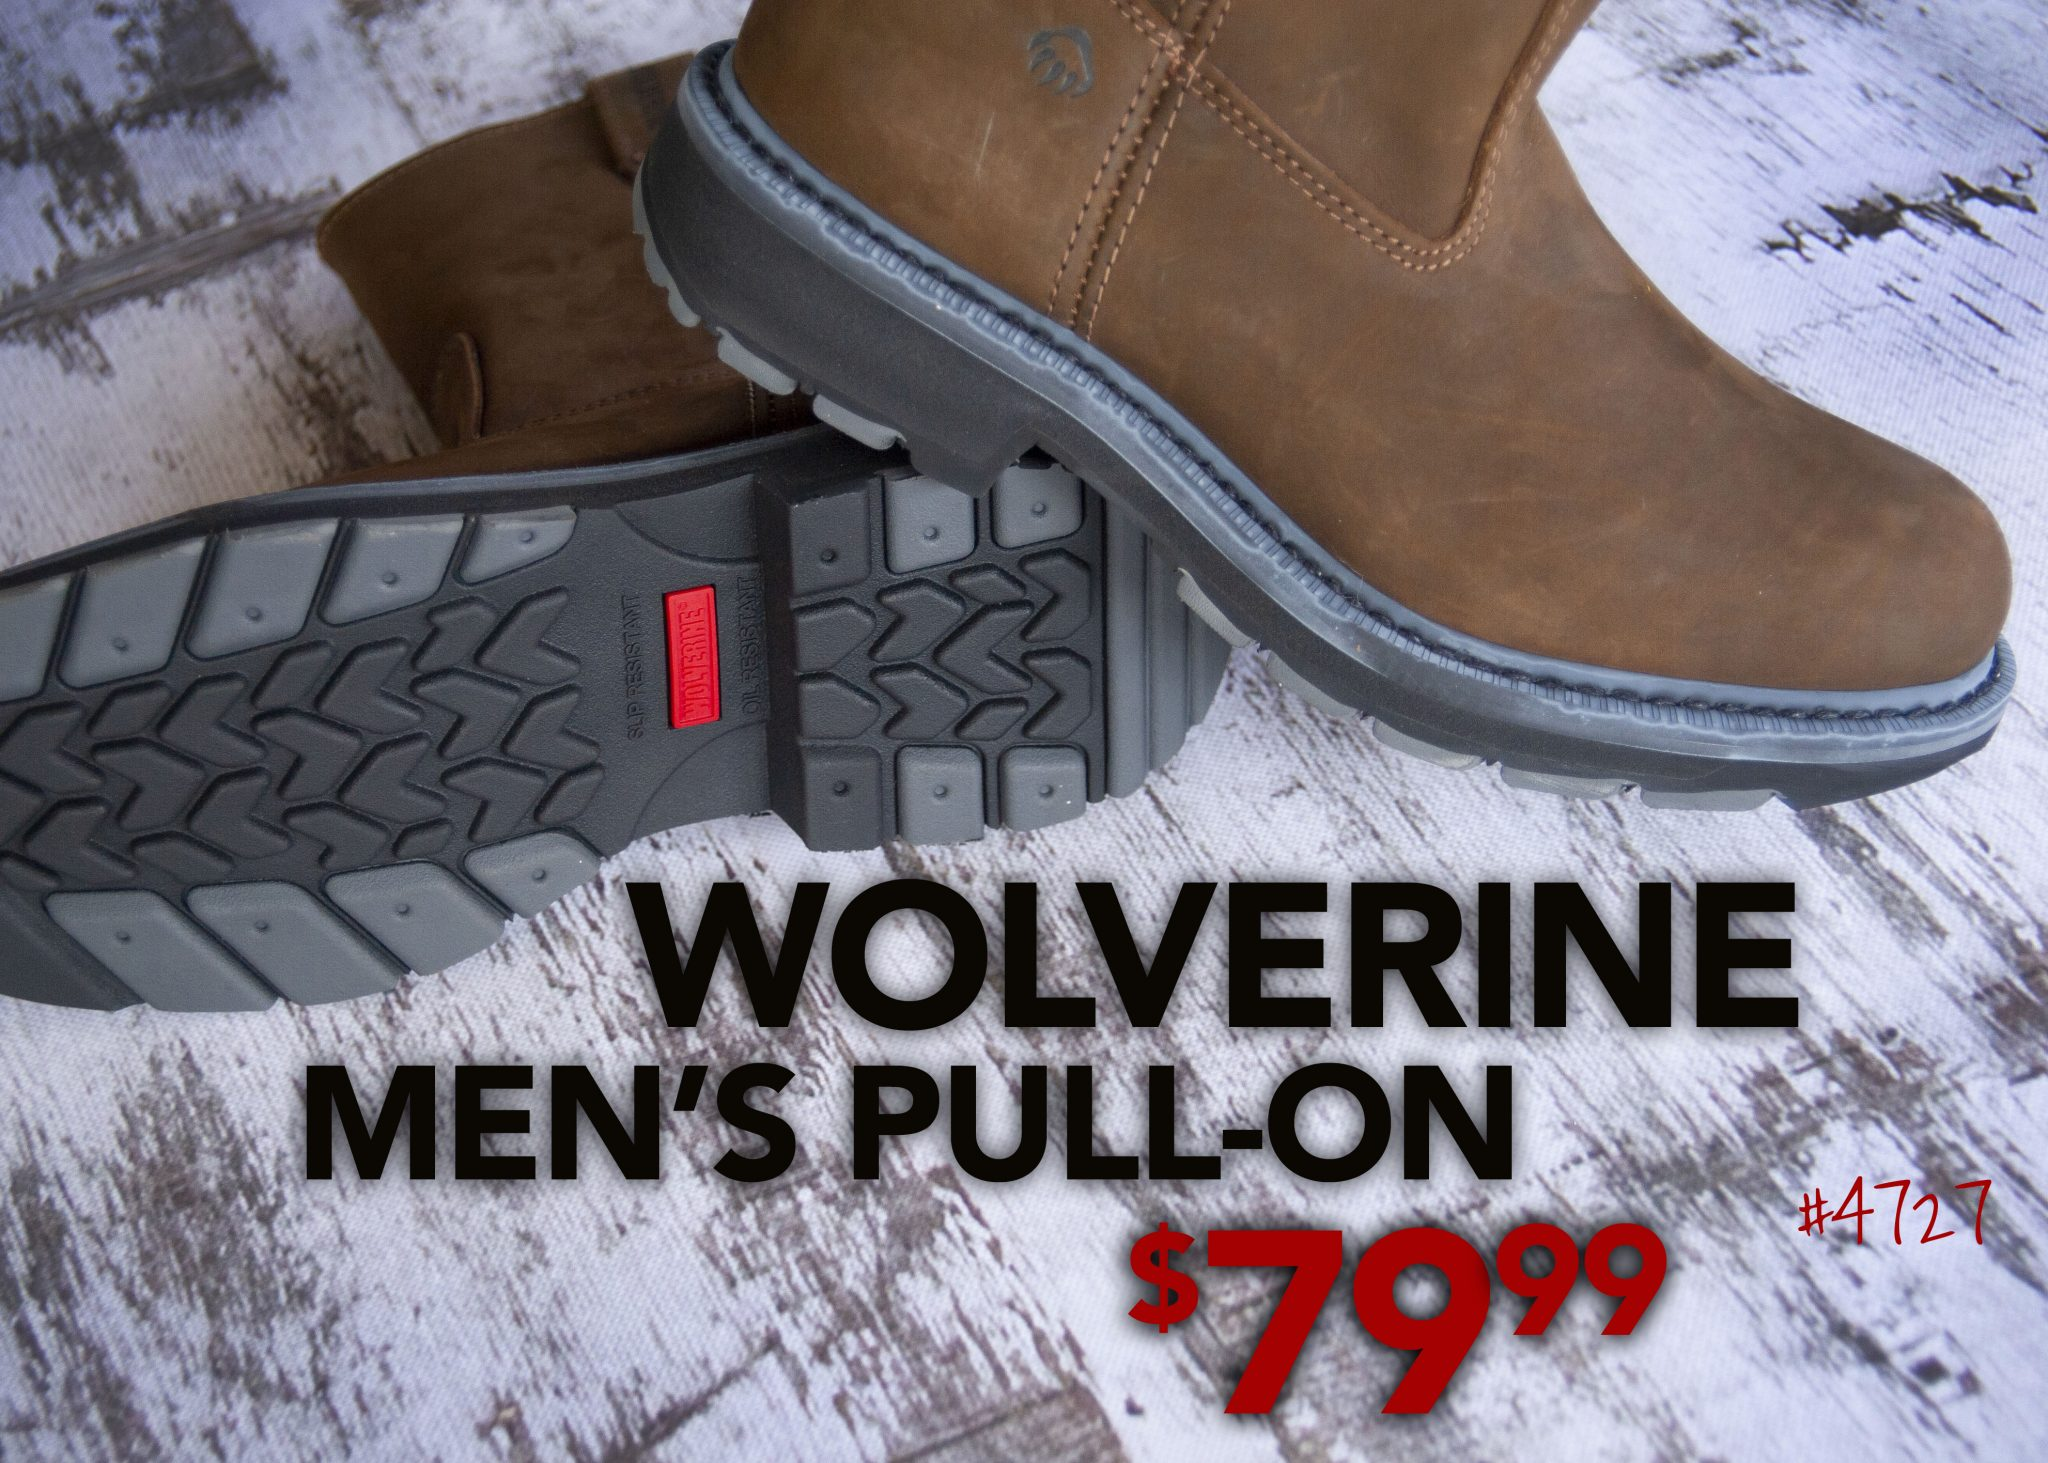 a61bf5350d1 Vanderbilt's - Your Work Boot Center - Family Owned Since 1973